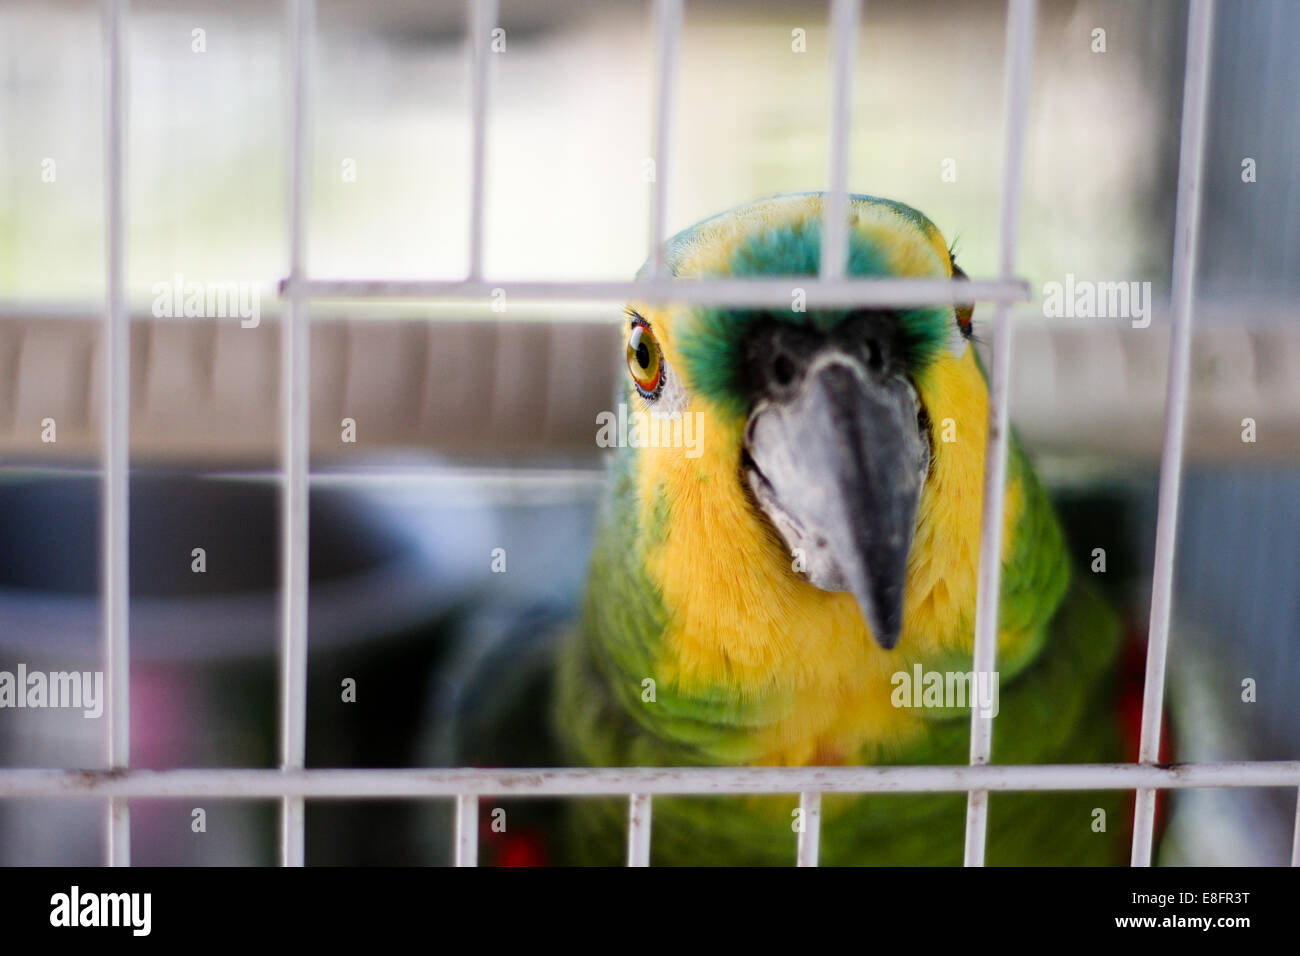 Parrot in cage - Stock Image